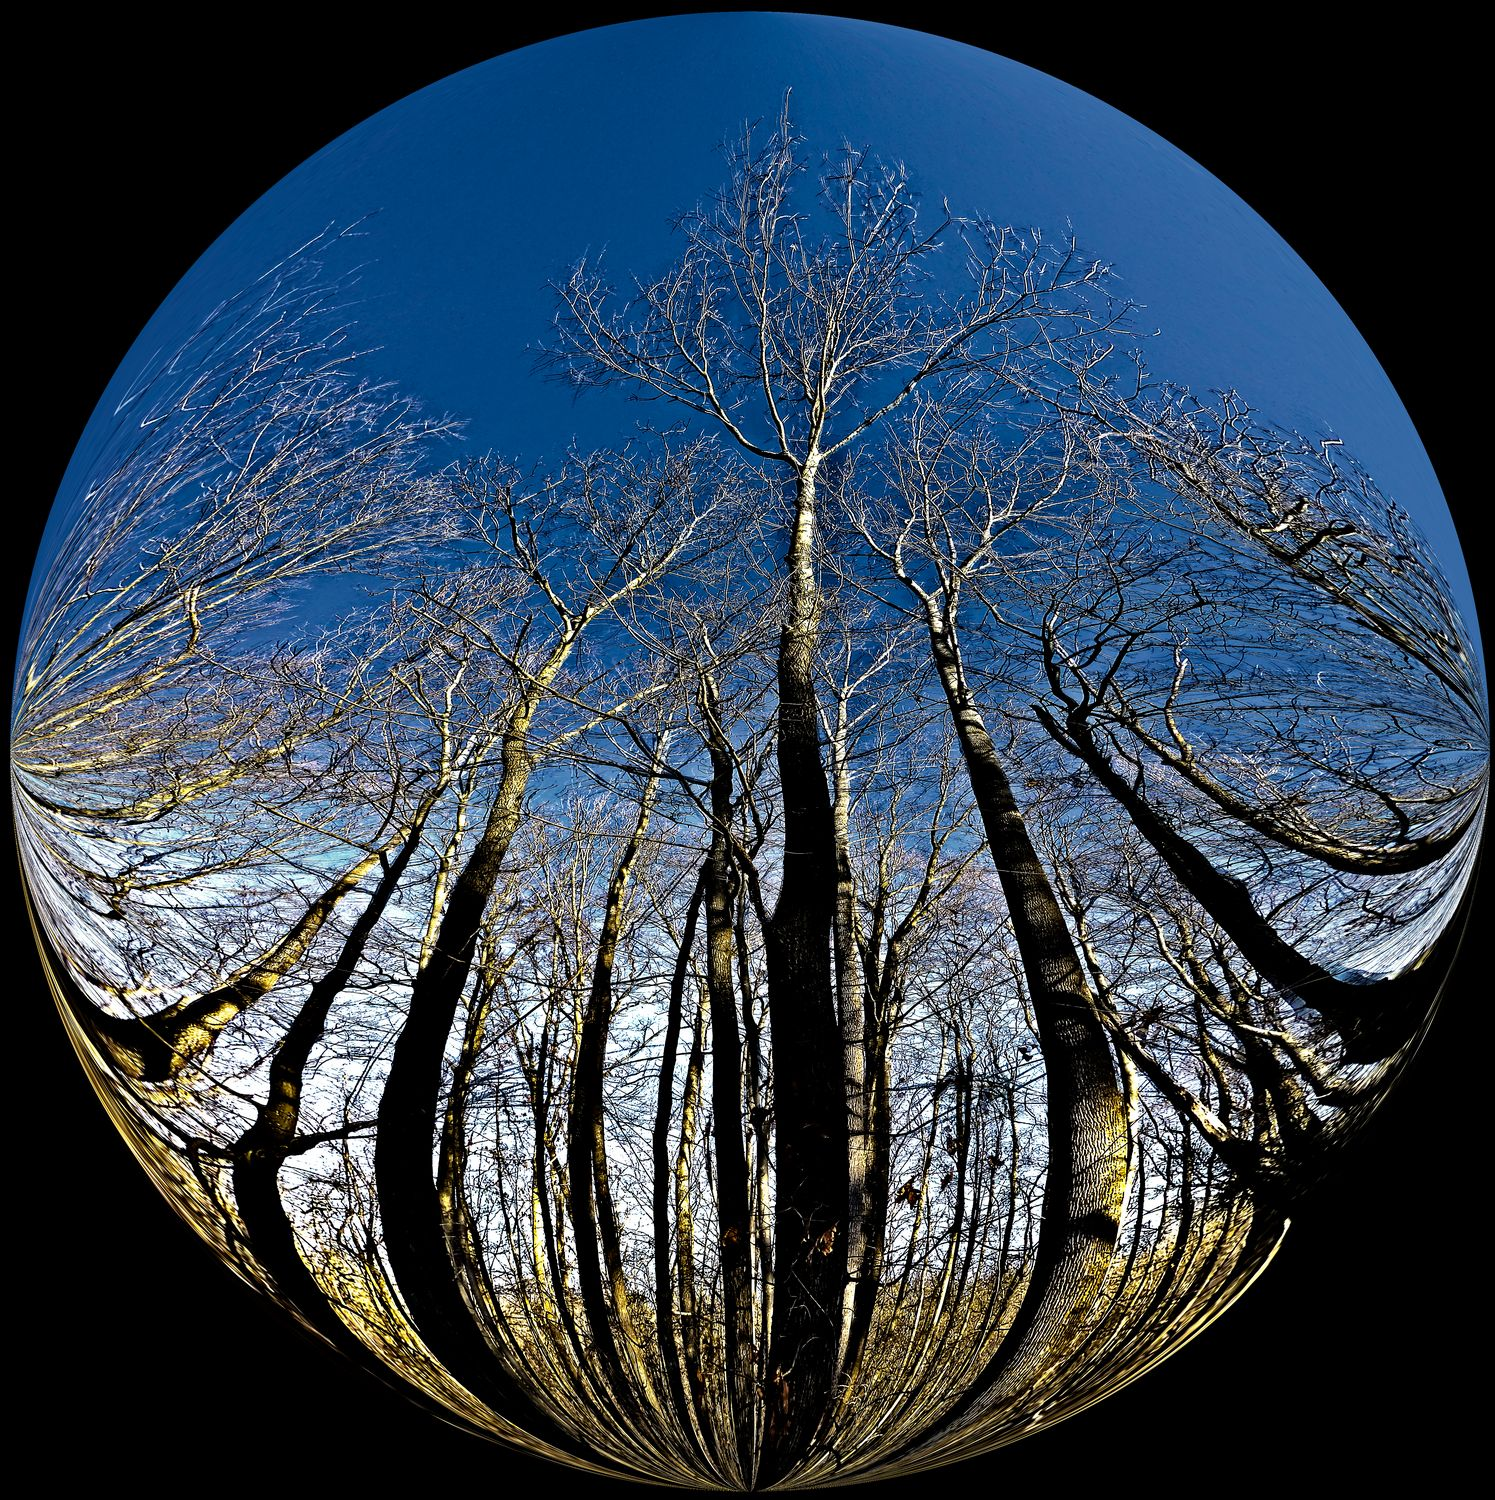 -  The trees in our neighborhood exist in a bubble - Bubble Pictures - made with Wilkington-Smythe